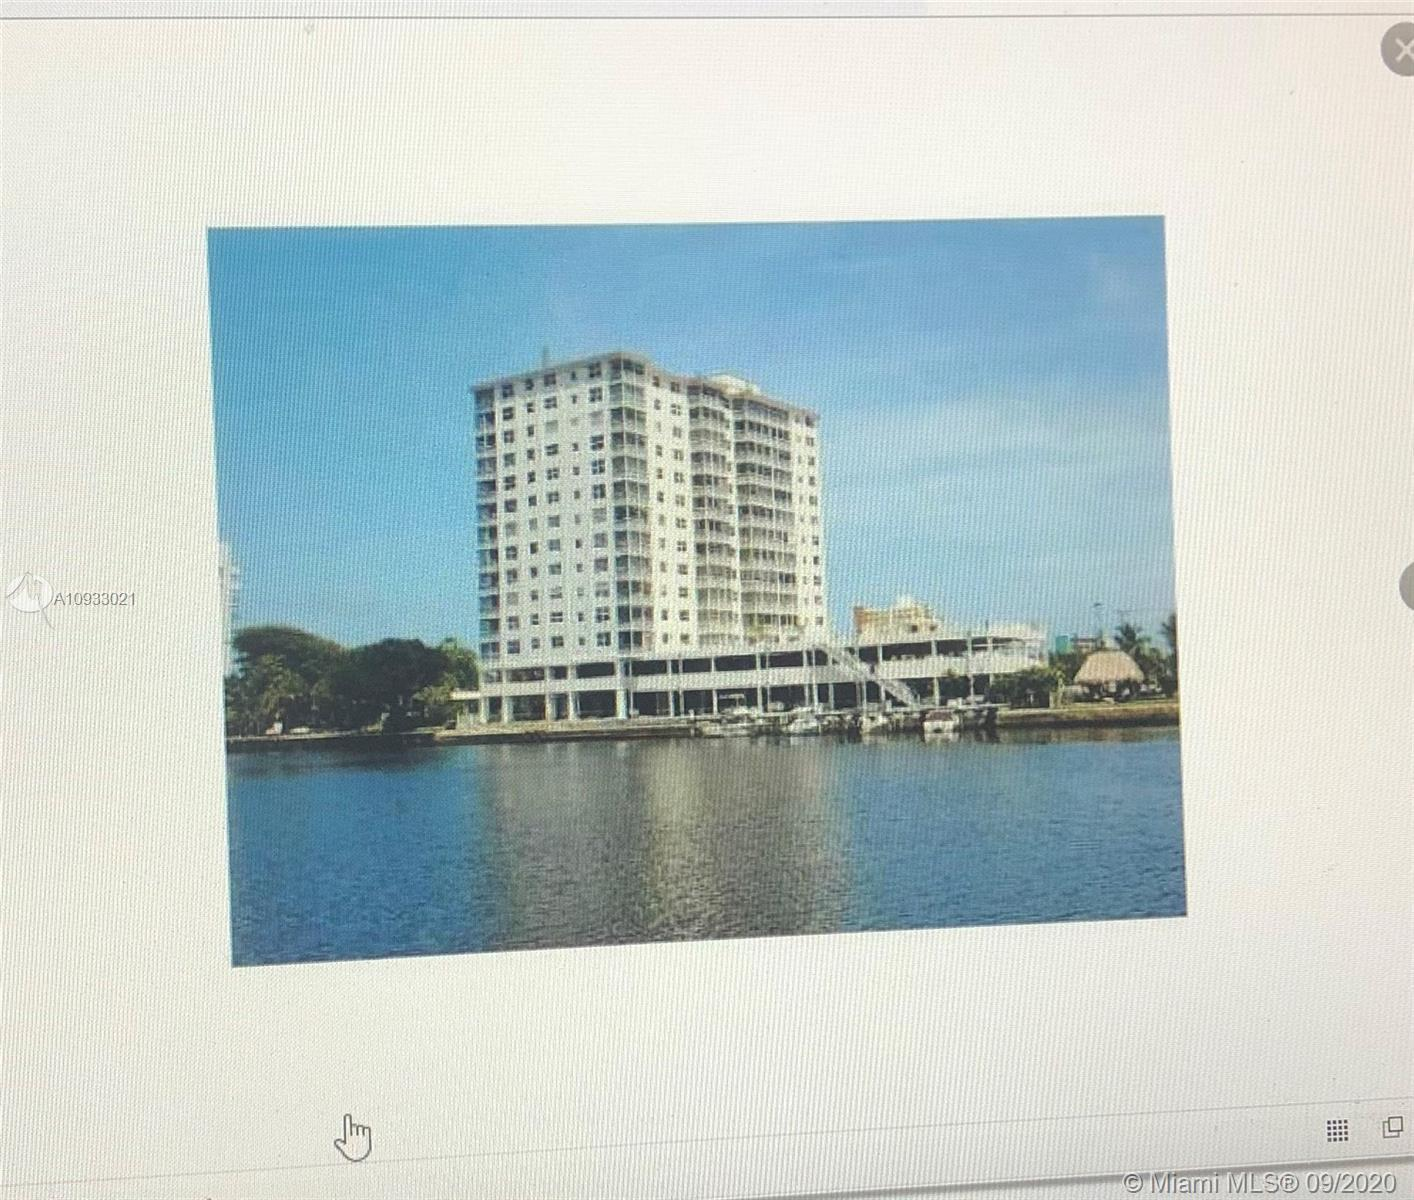 EXTENSIVE RENOVATION IN WHOLE APARTMENT,PRIME INTRACOSTAL WATER  VIEW FROM THE LIVING ROOM AND BALCO